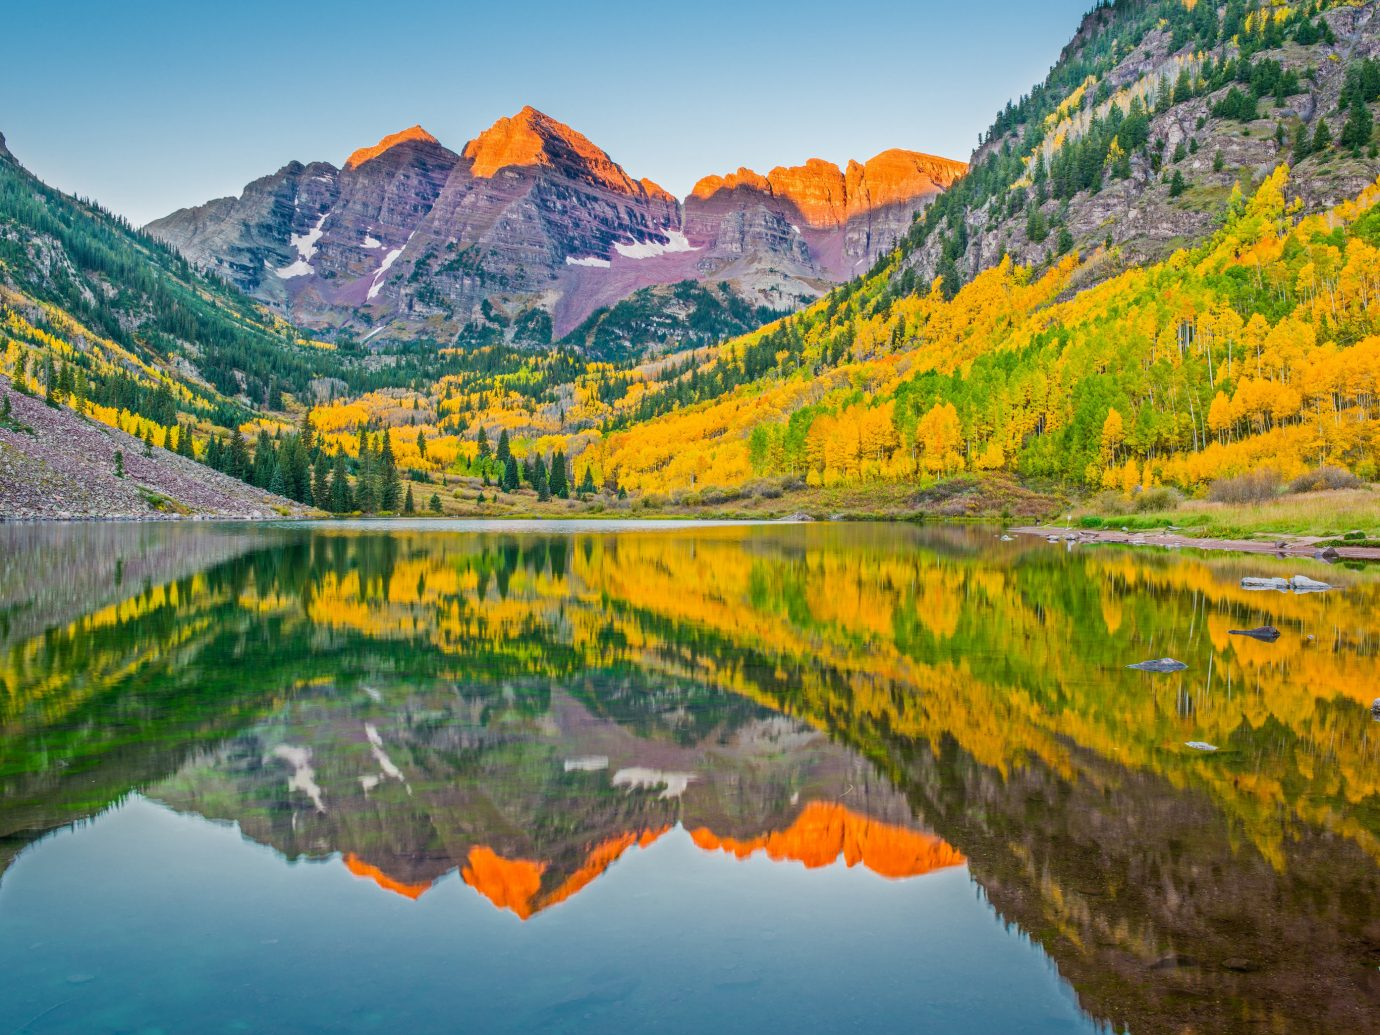 News Trip Ideas mountain sky reflection Nature leaf outdoor wilderness mount scenery Lake autumn valley national park water bank landscape tarn tree fjord computer wallpaper larch canyon fell mountain range